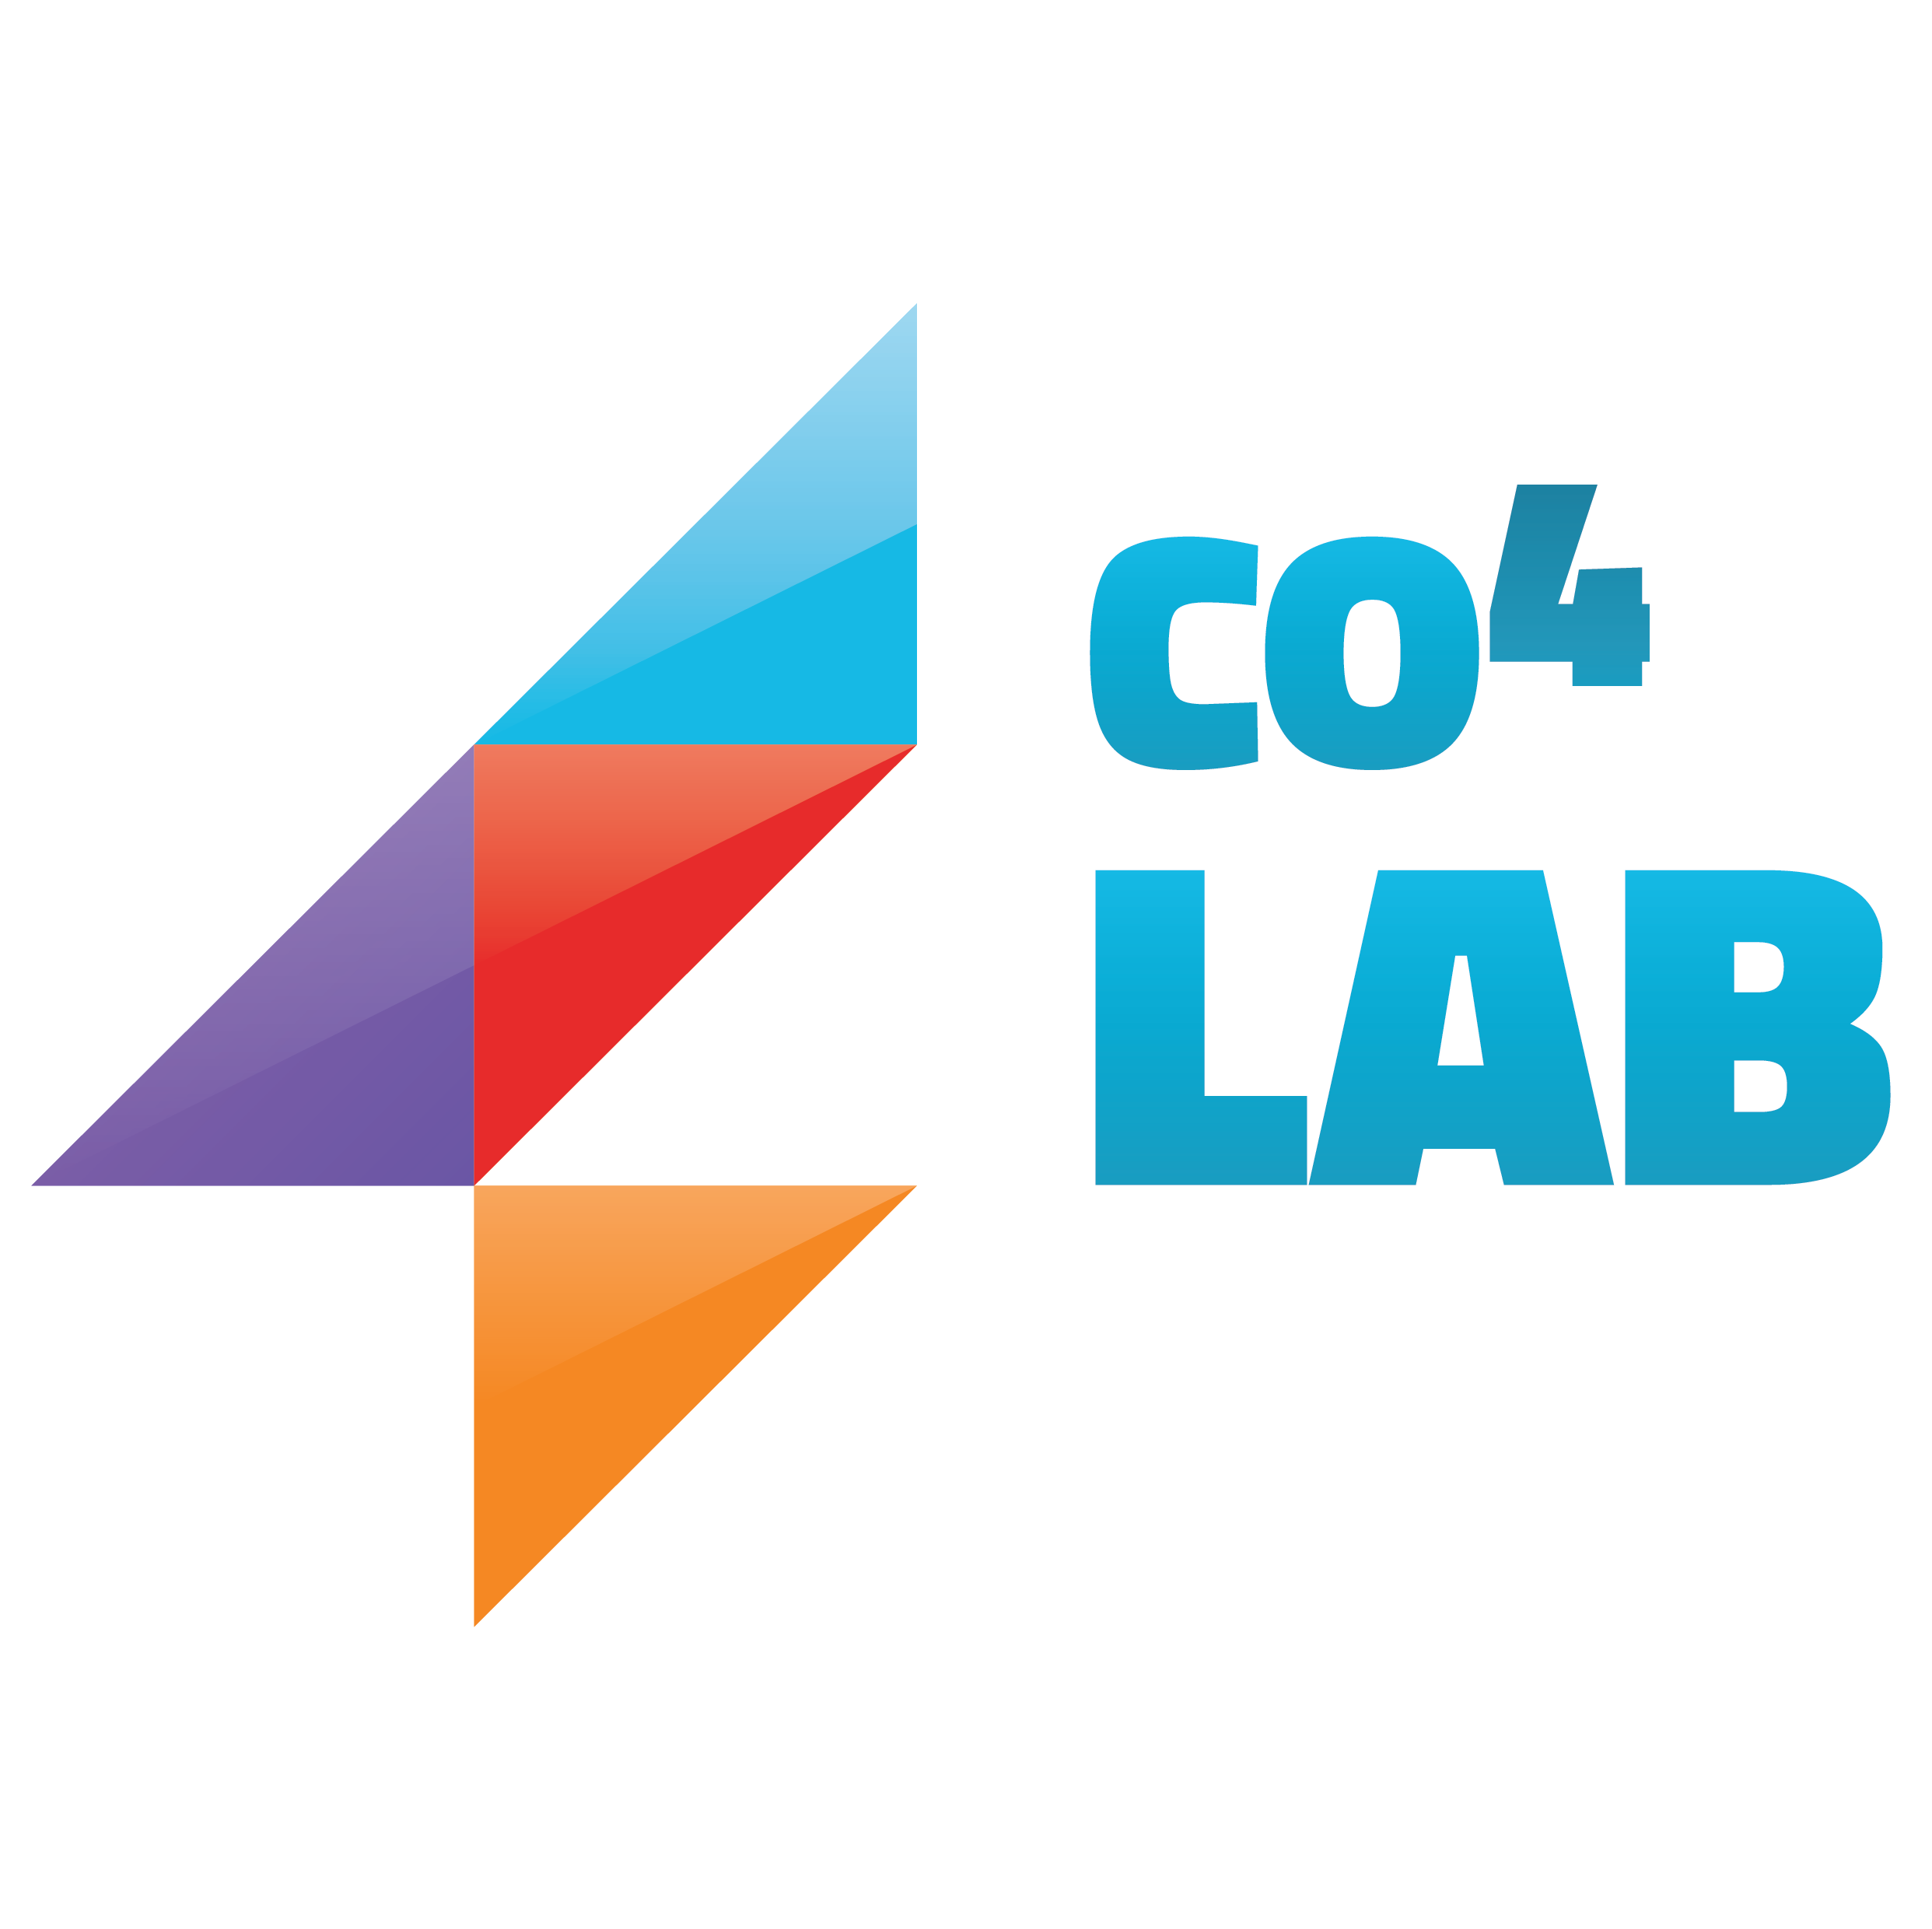 made Co4Lab